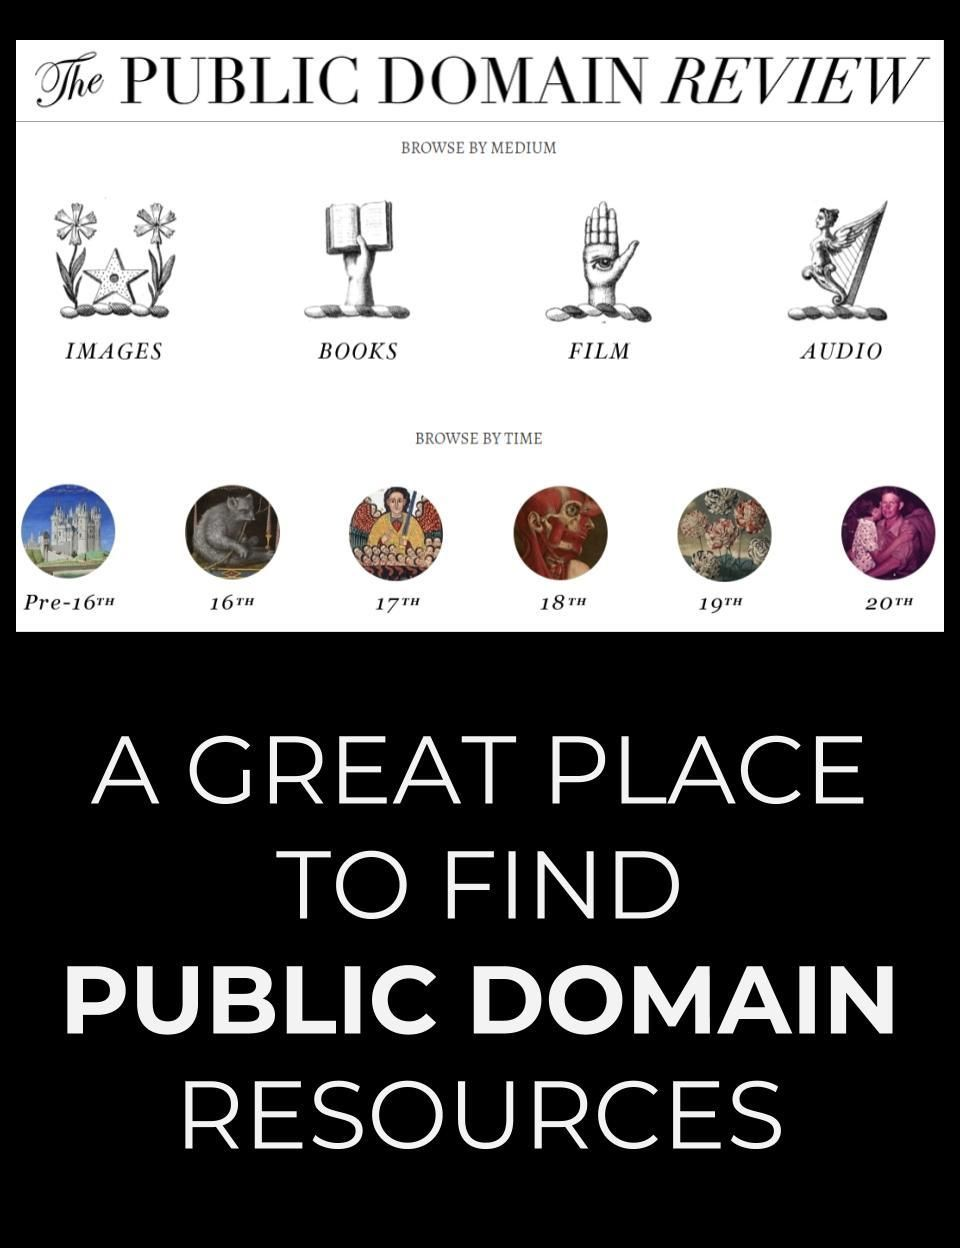 The Public Domain Review is a website that features